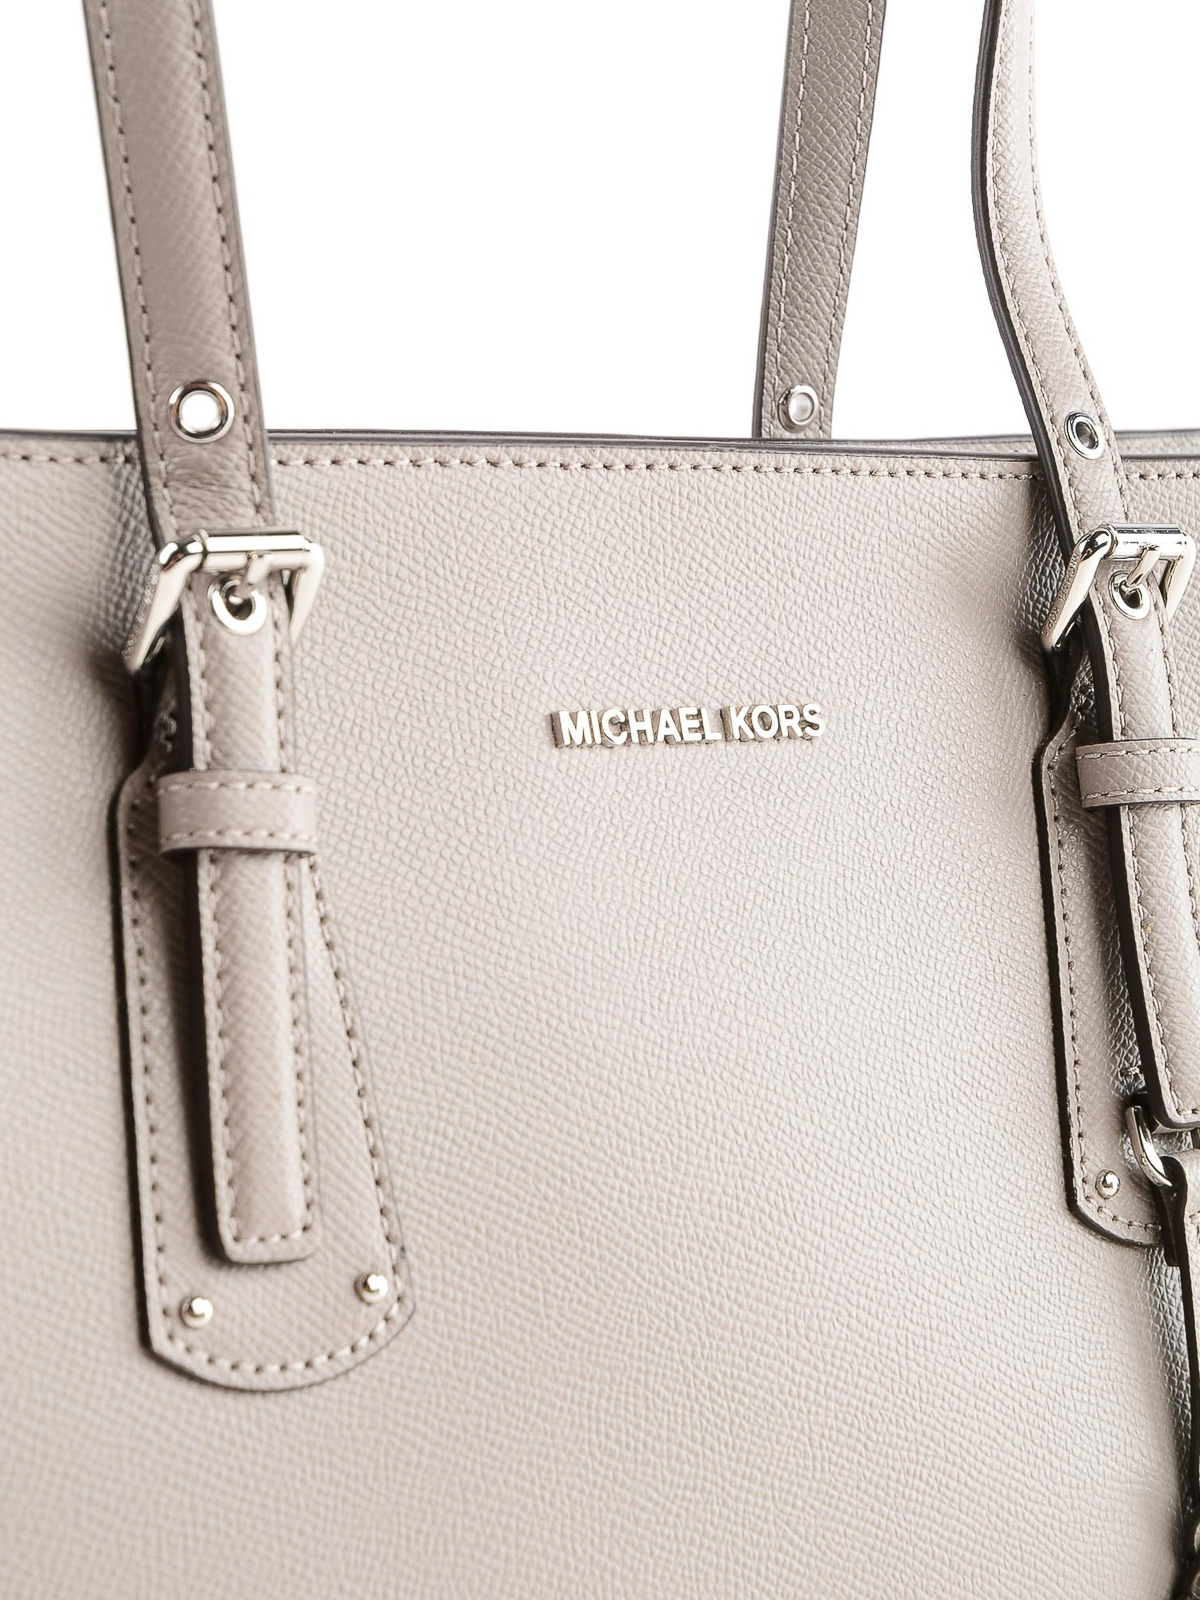 36bdccc28a66e2 Michael Kors - Voyager medium pearl grey leather tote - totes bags ...